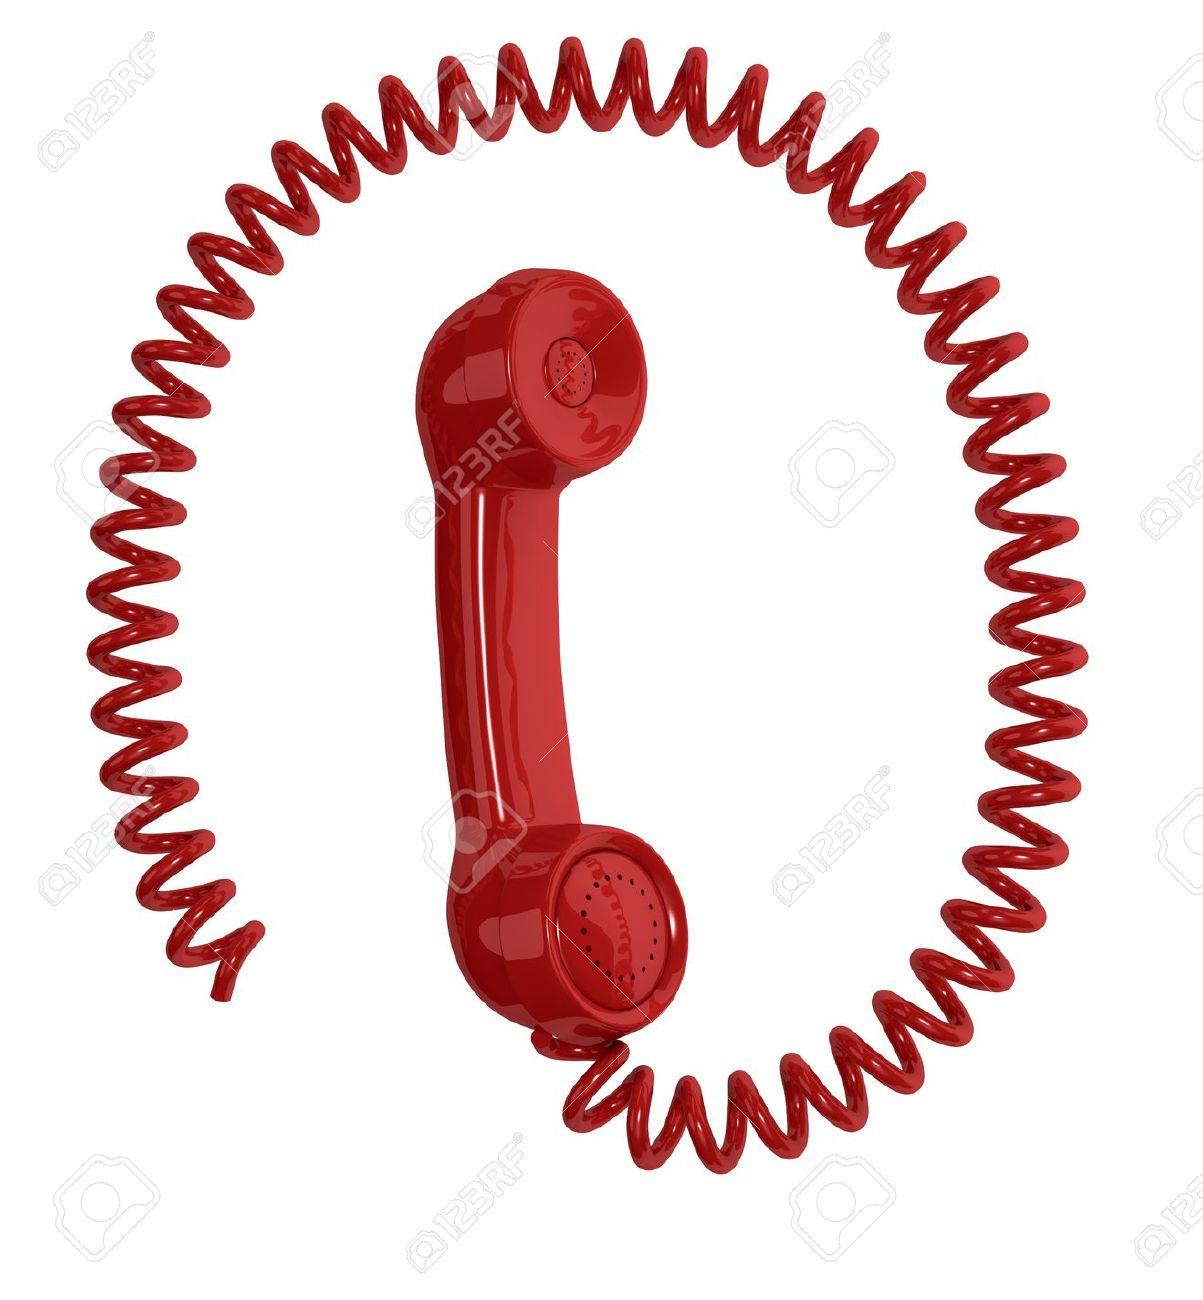 One Vintage Handset With A Spiral Cable Around It, Resembling.